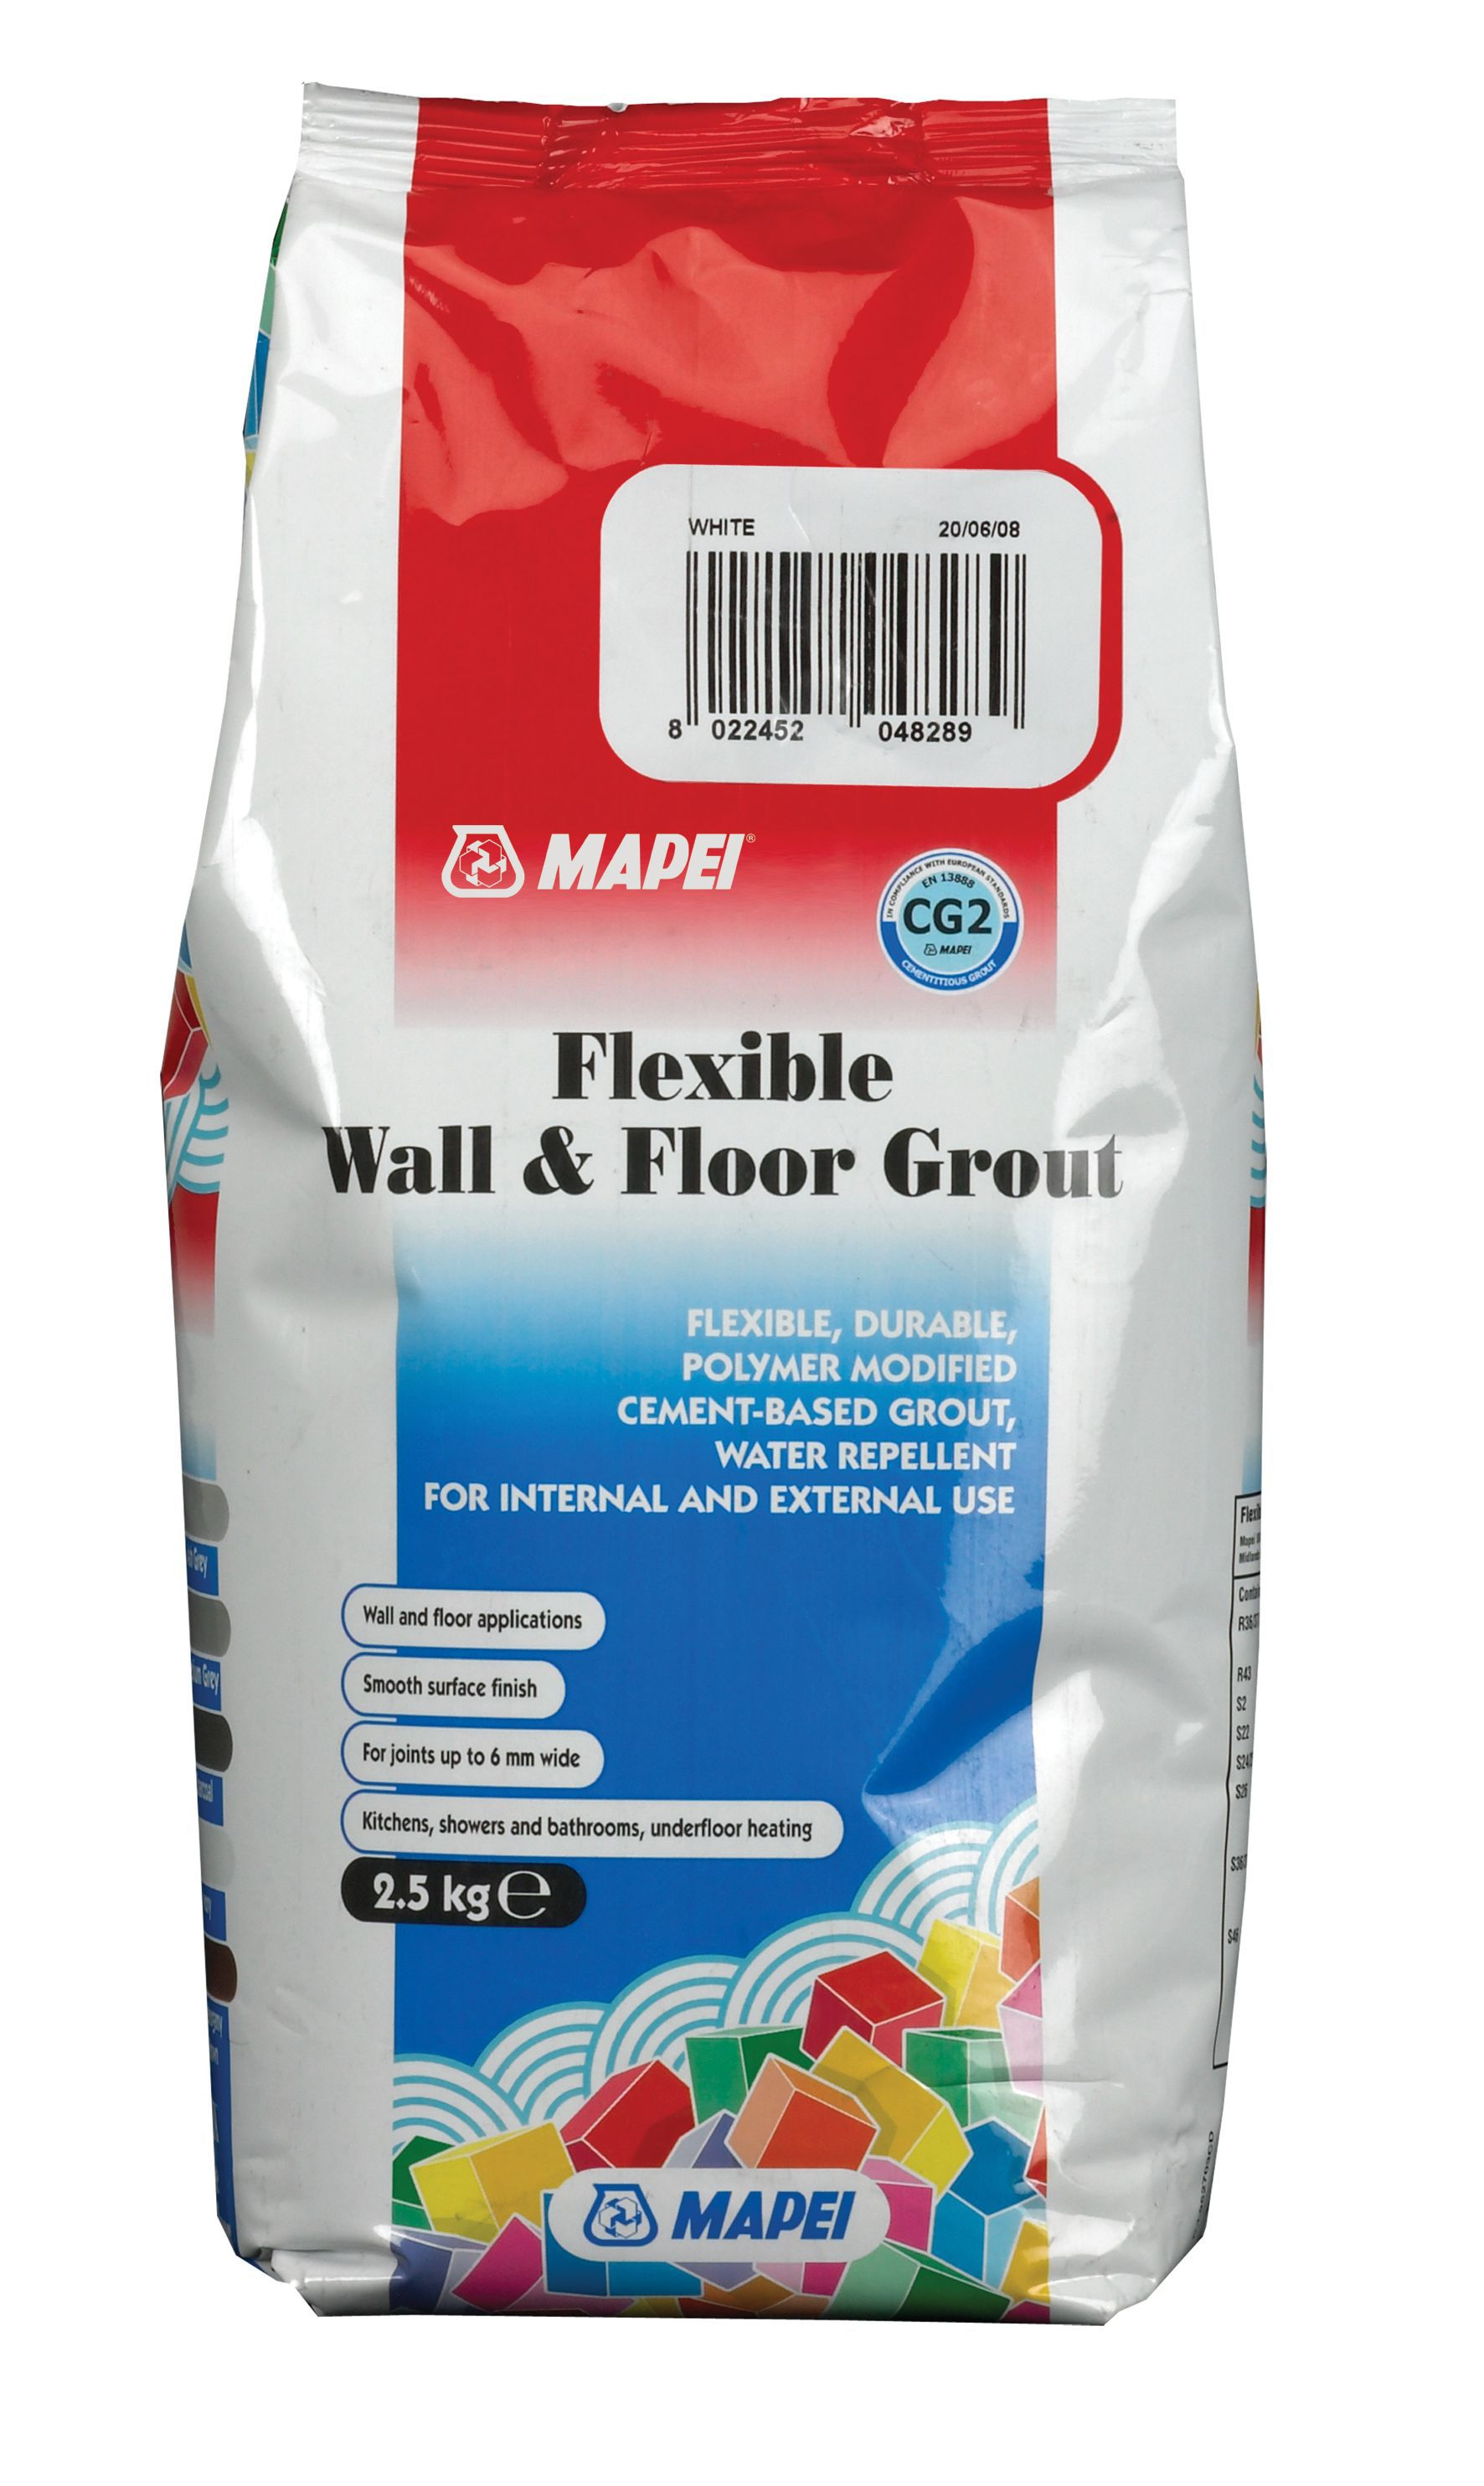 Mapei flexible white wall floor grout w25kg departments mapei flexible white wall floor grout w25kg departments diy at bq dailygadgetfo Gallery